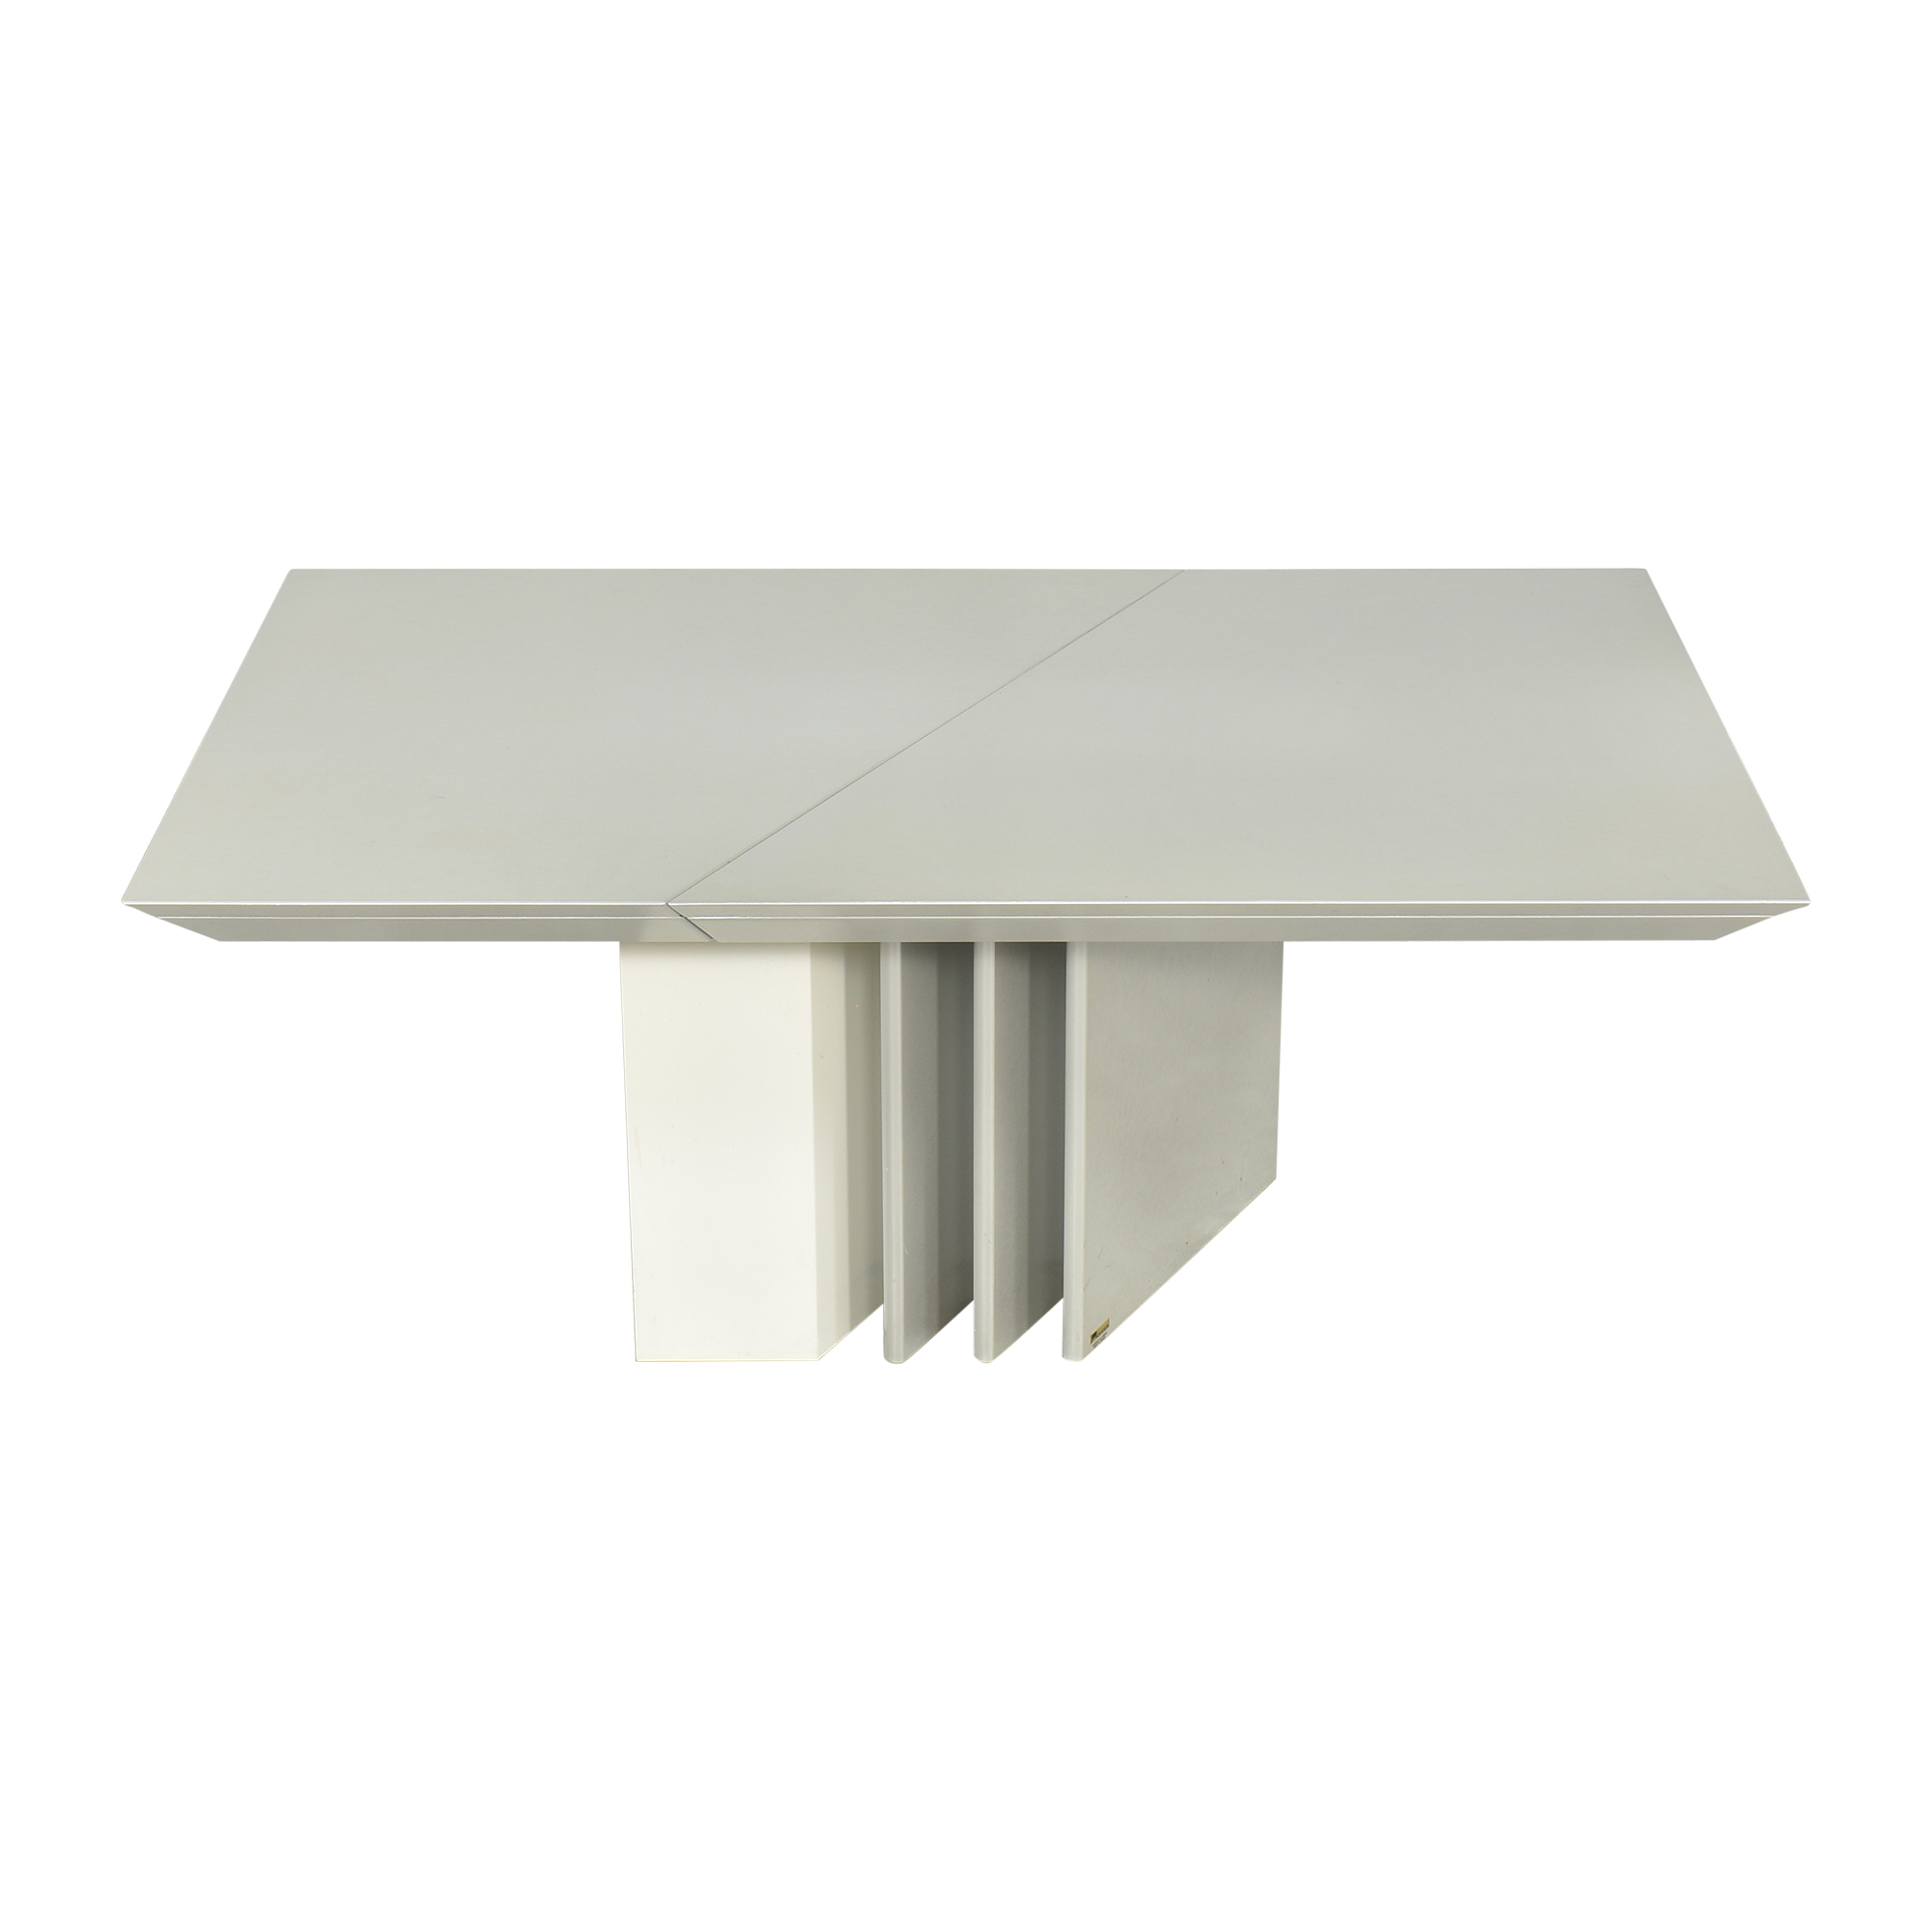 Rougier Modern Extendable Dining Table / Tables